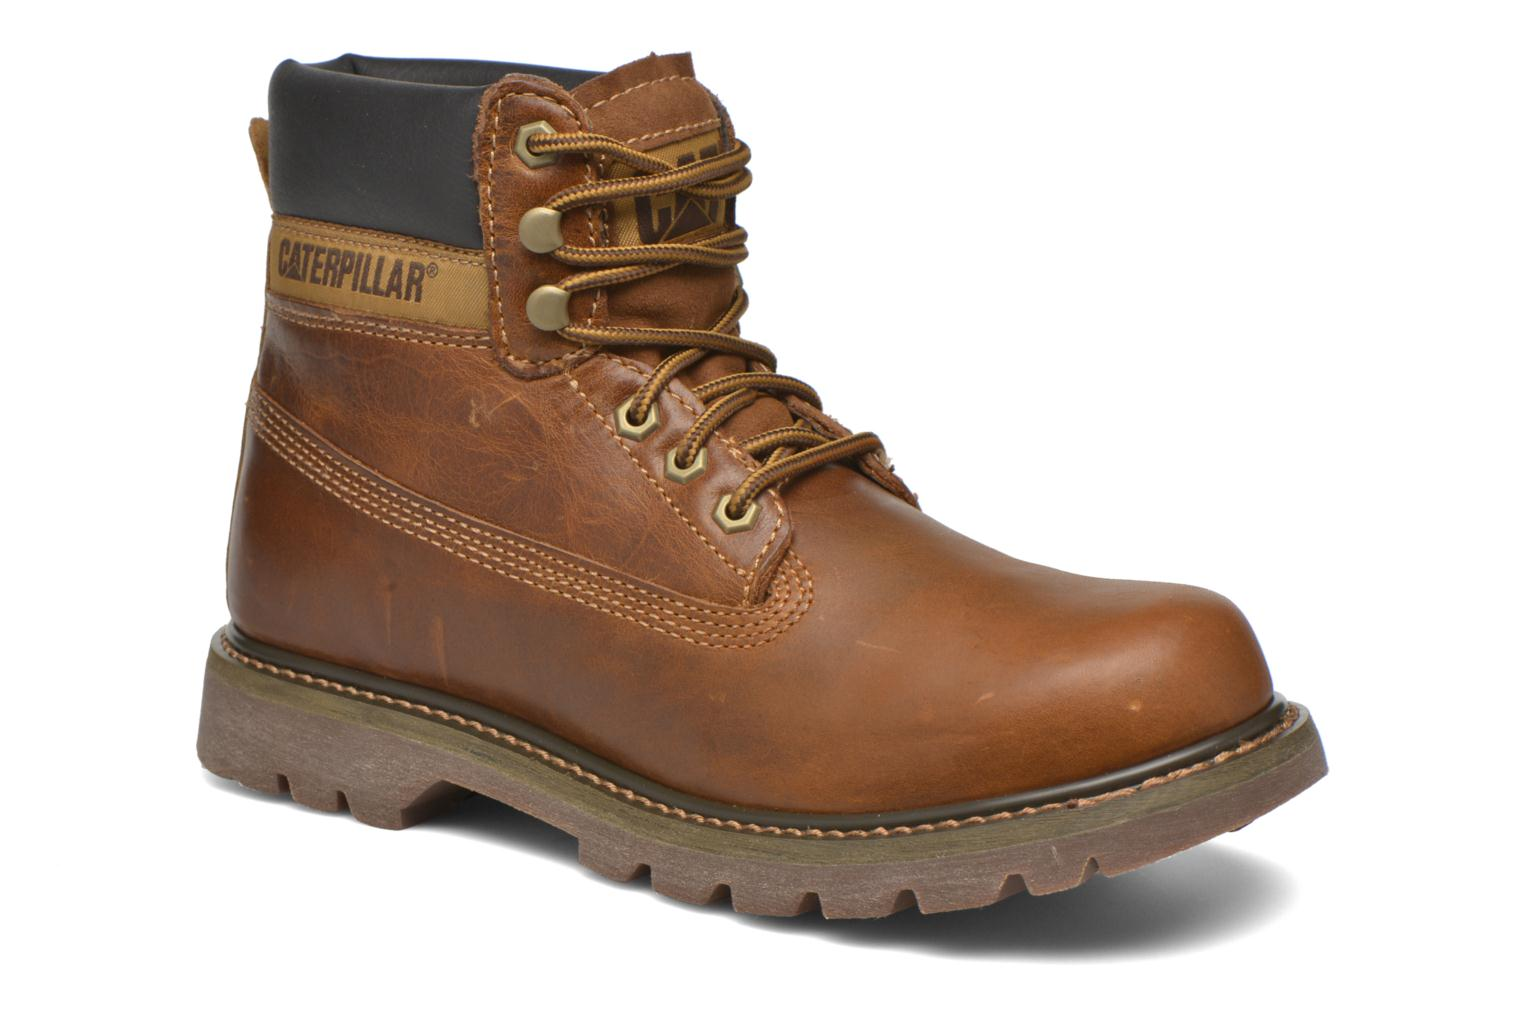 Bottines et boots Caterpillar Colorado Marron vue détail/paire